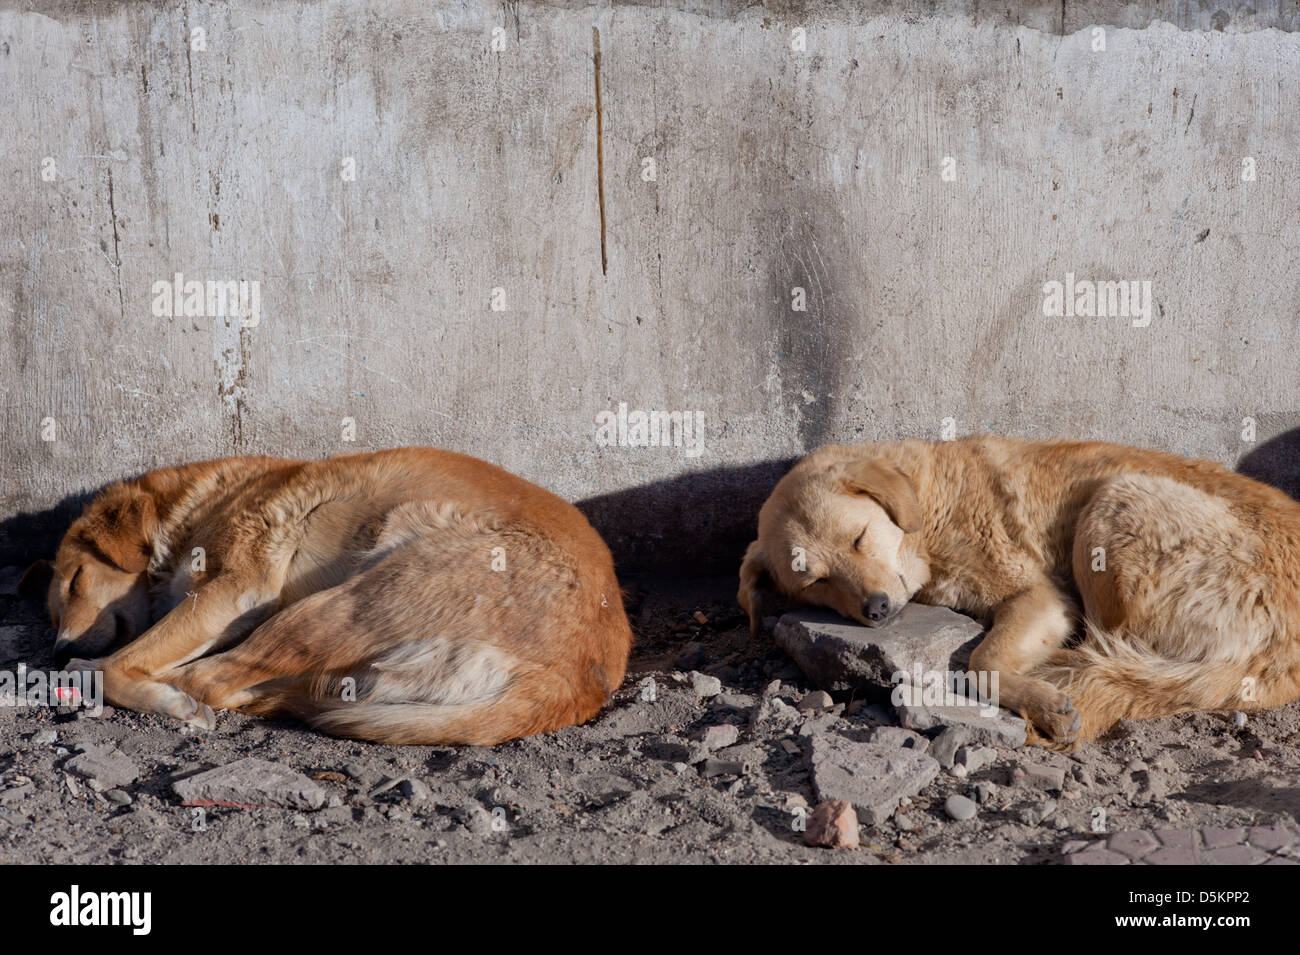 Cute, homeless, street dogs, sleeping in the mountain town of Leh, Ladakh, Jammu and Kashmir. India. - Stock Image